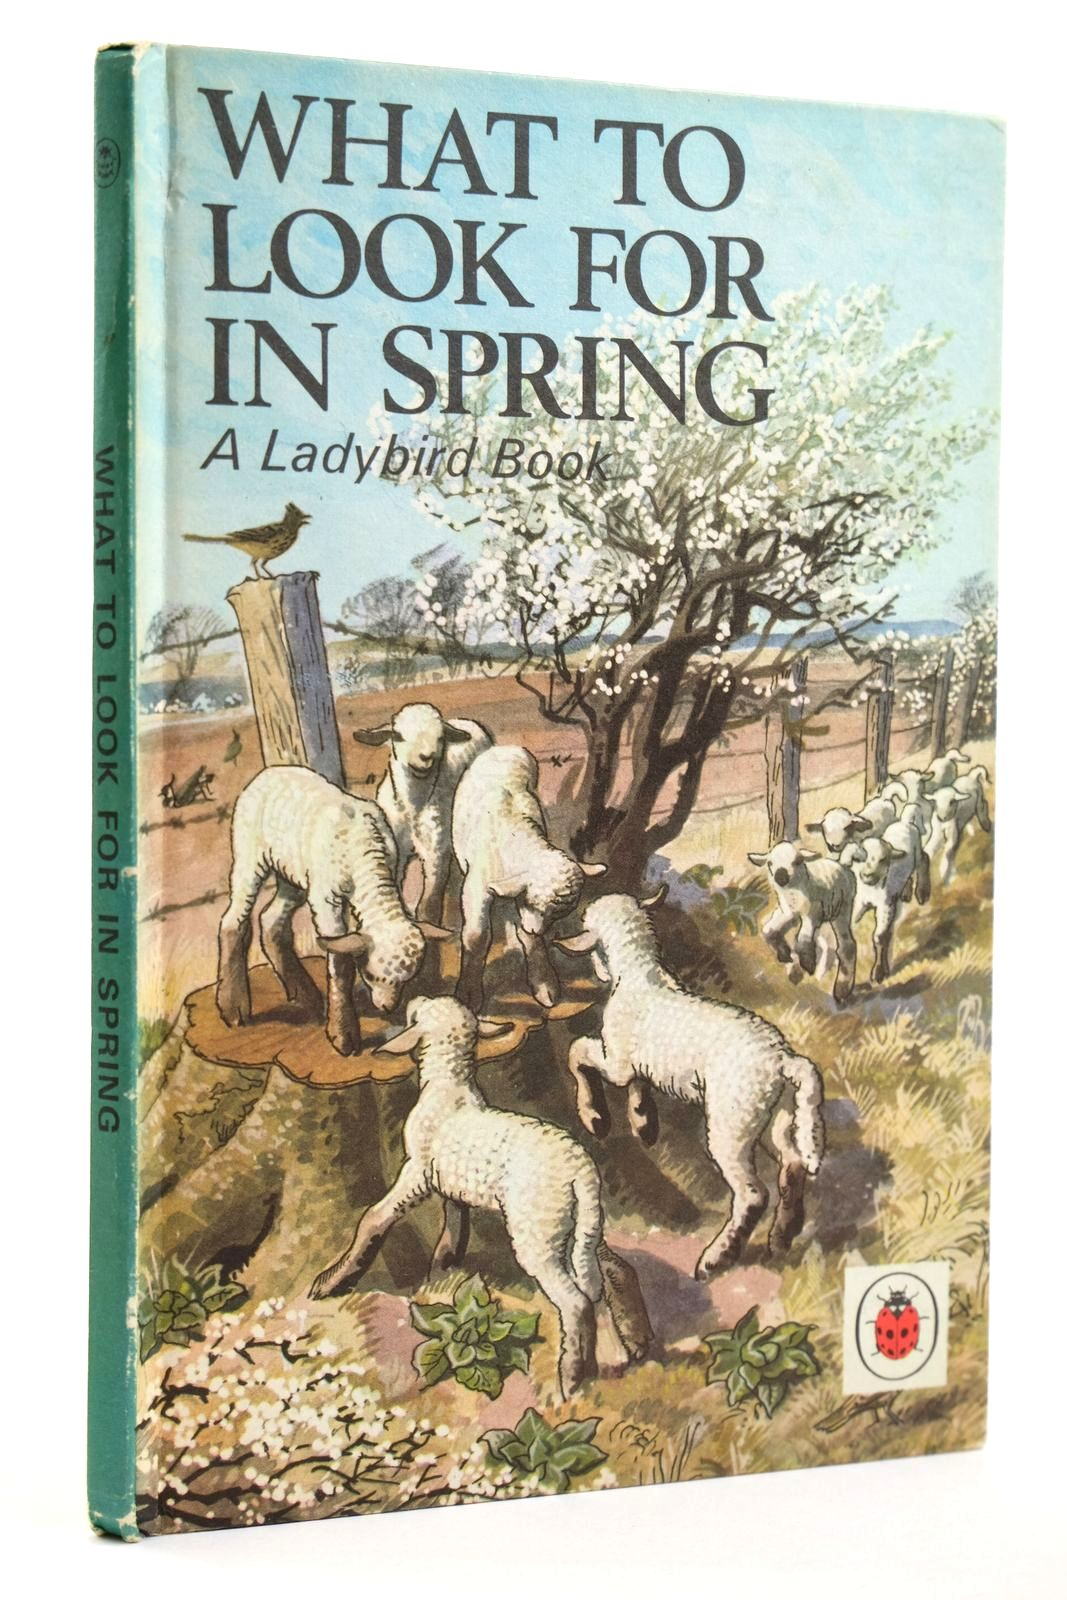 Photo of WHAT TO LOOK FOR IN SPRING written by Watson, E.L. Grant illustrated by Tunnicliffe, C.F. published by Wills & Hepworth Ltd. (STOCK CODE: 2131788)  for sale by Stella & Rose's Books